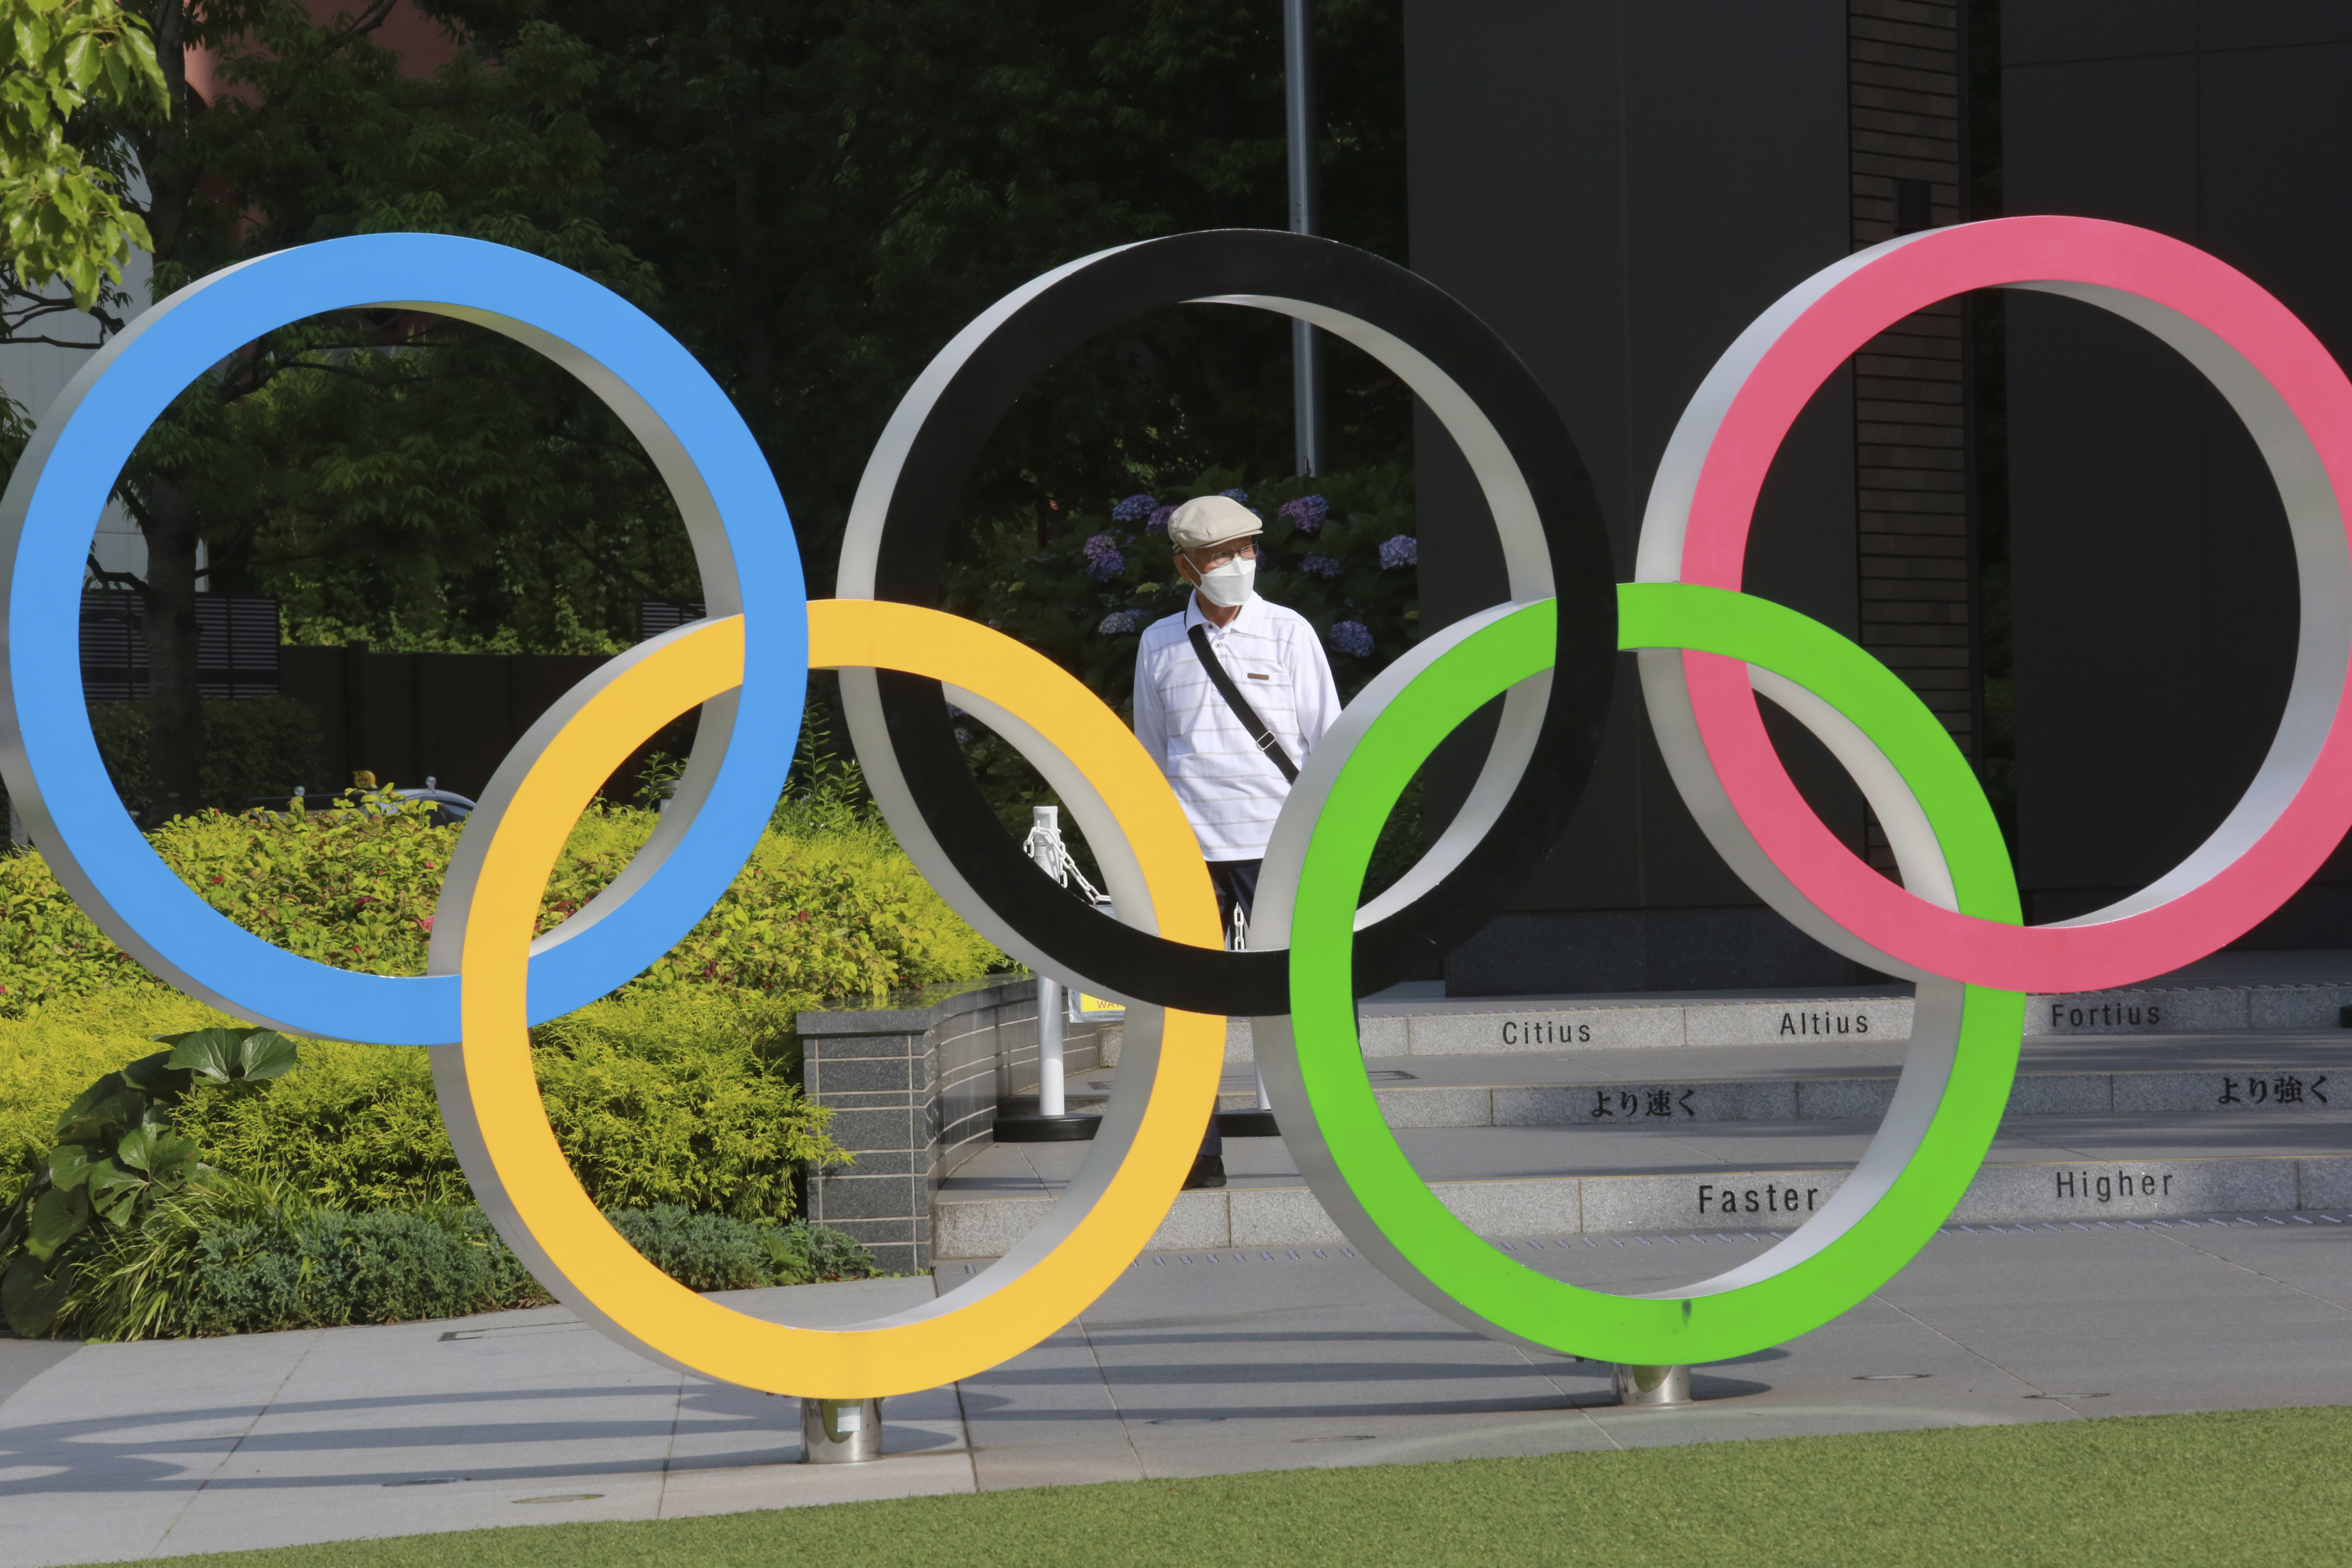 A man walks past the Olympic rings in Tokyo in 2021.